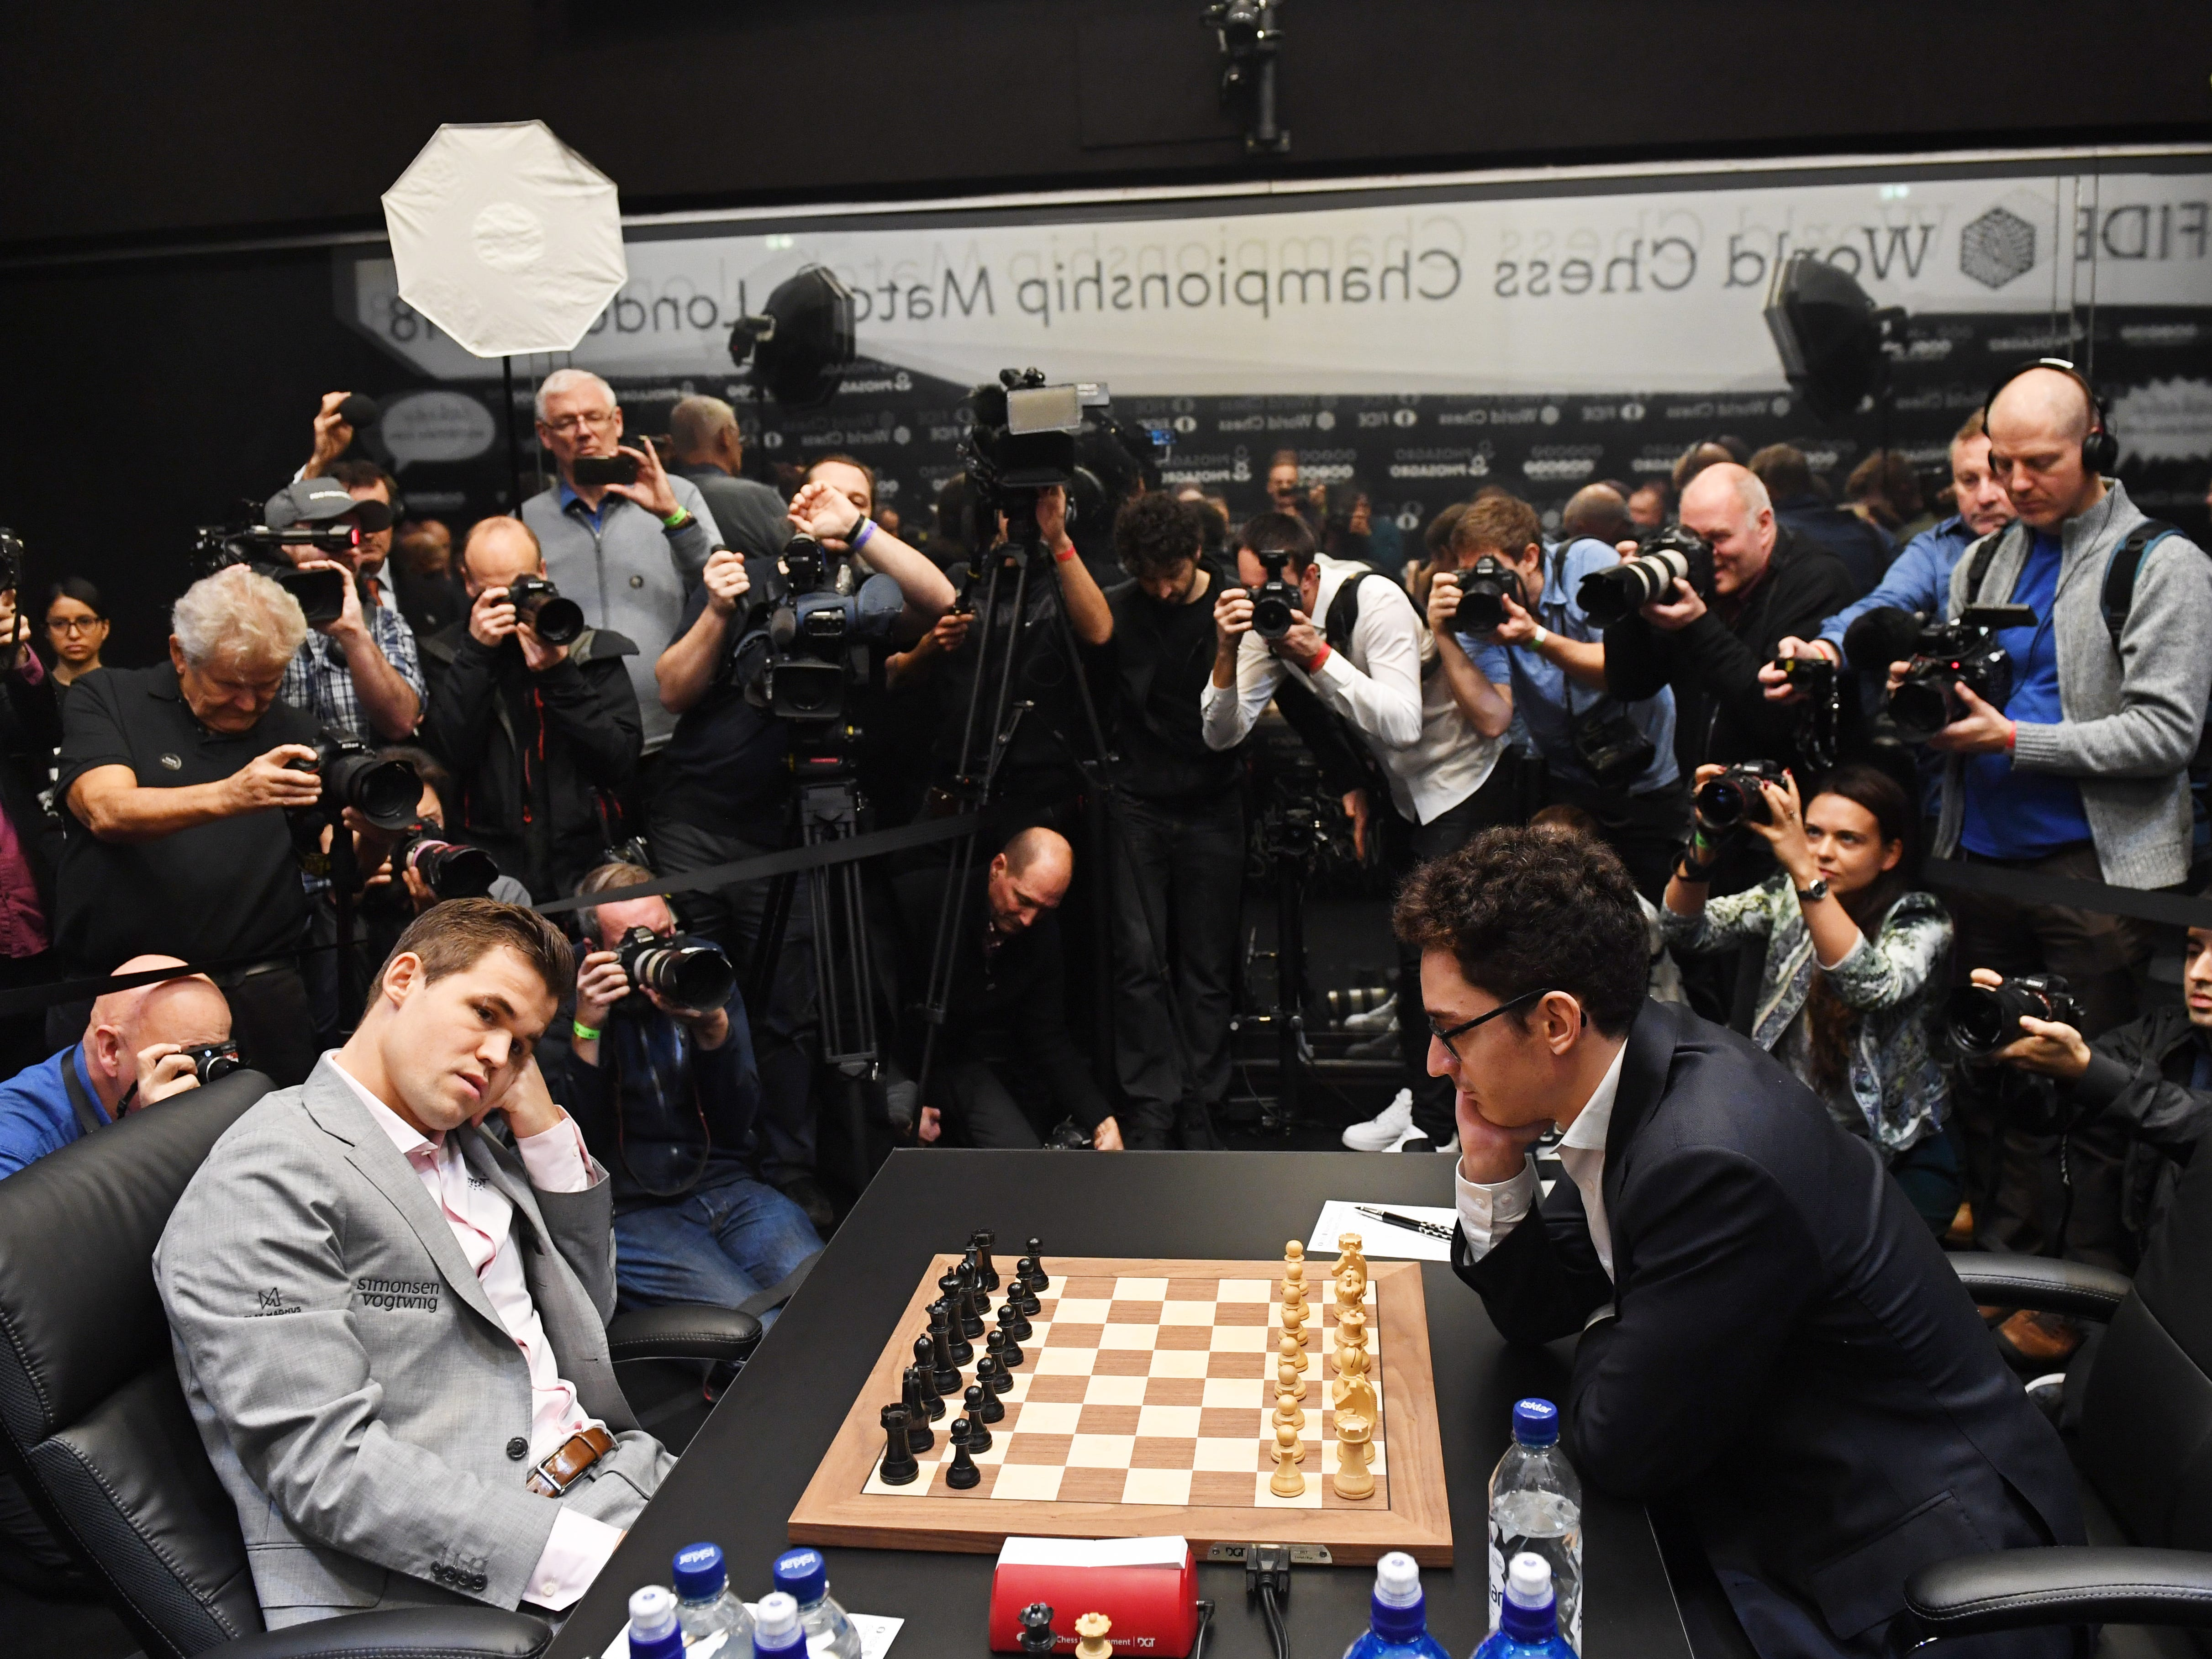 Reigning chess world champion Magnus Carlsen, left, plays against American challenger Fabiano Caruana at the round twelve game during the World Chess Championship, Nov. 26, 2018, in London.